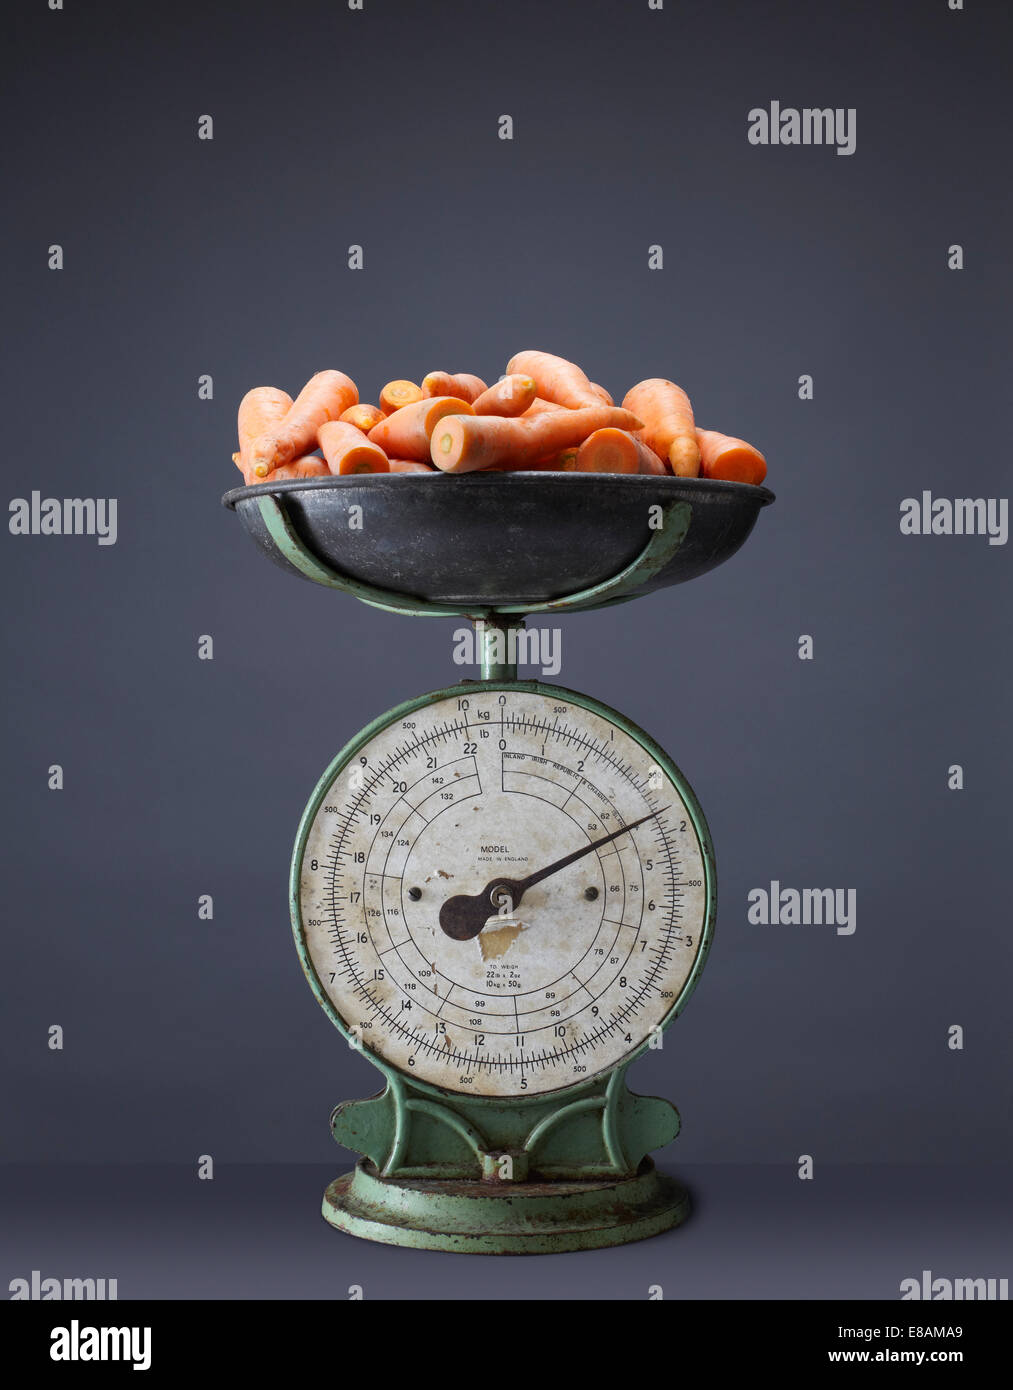 Fresh carrots on top of vintage kitchen scales - Stock Image